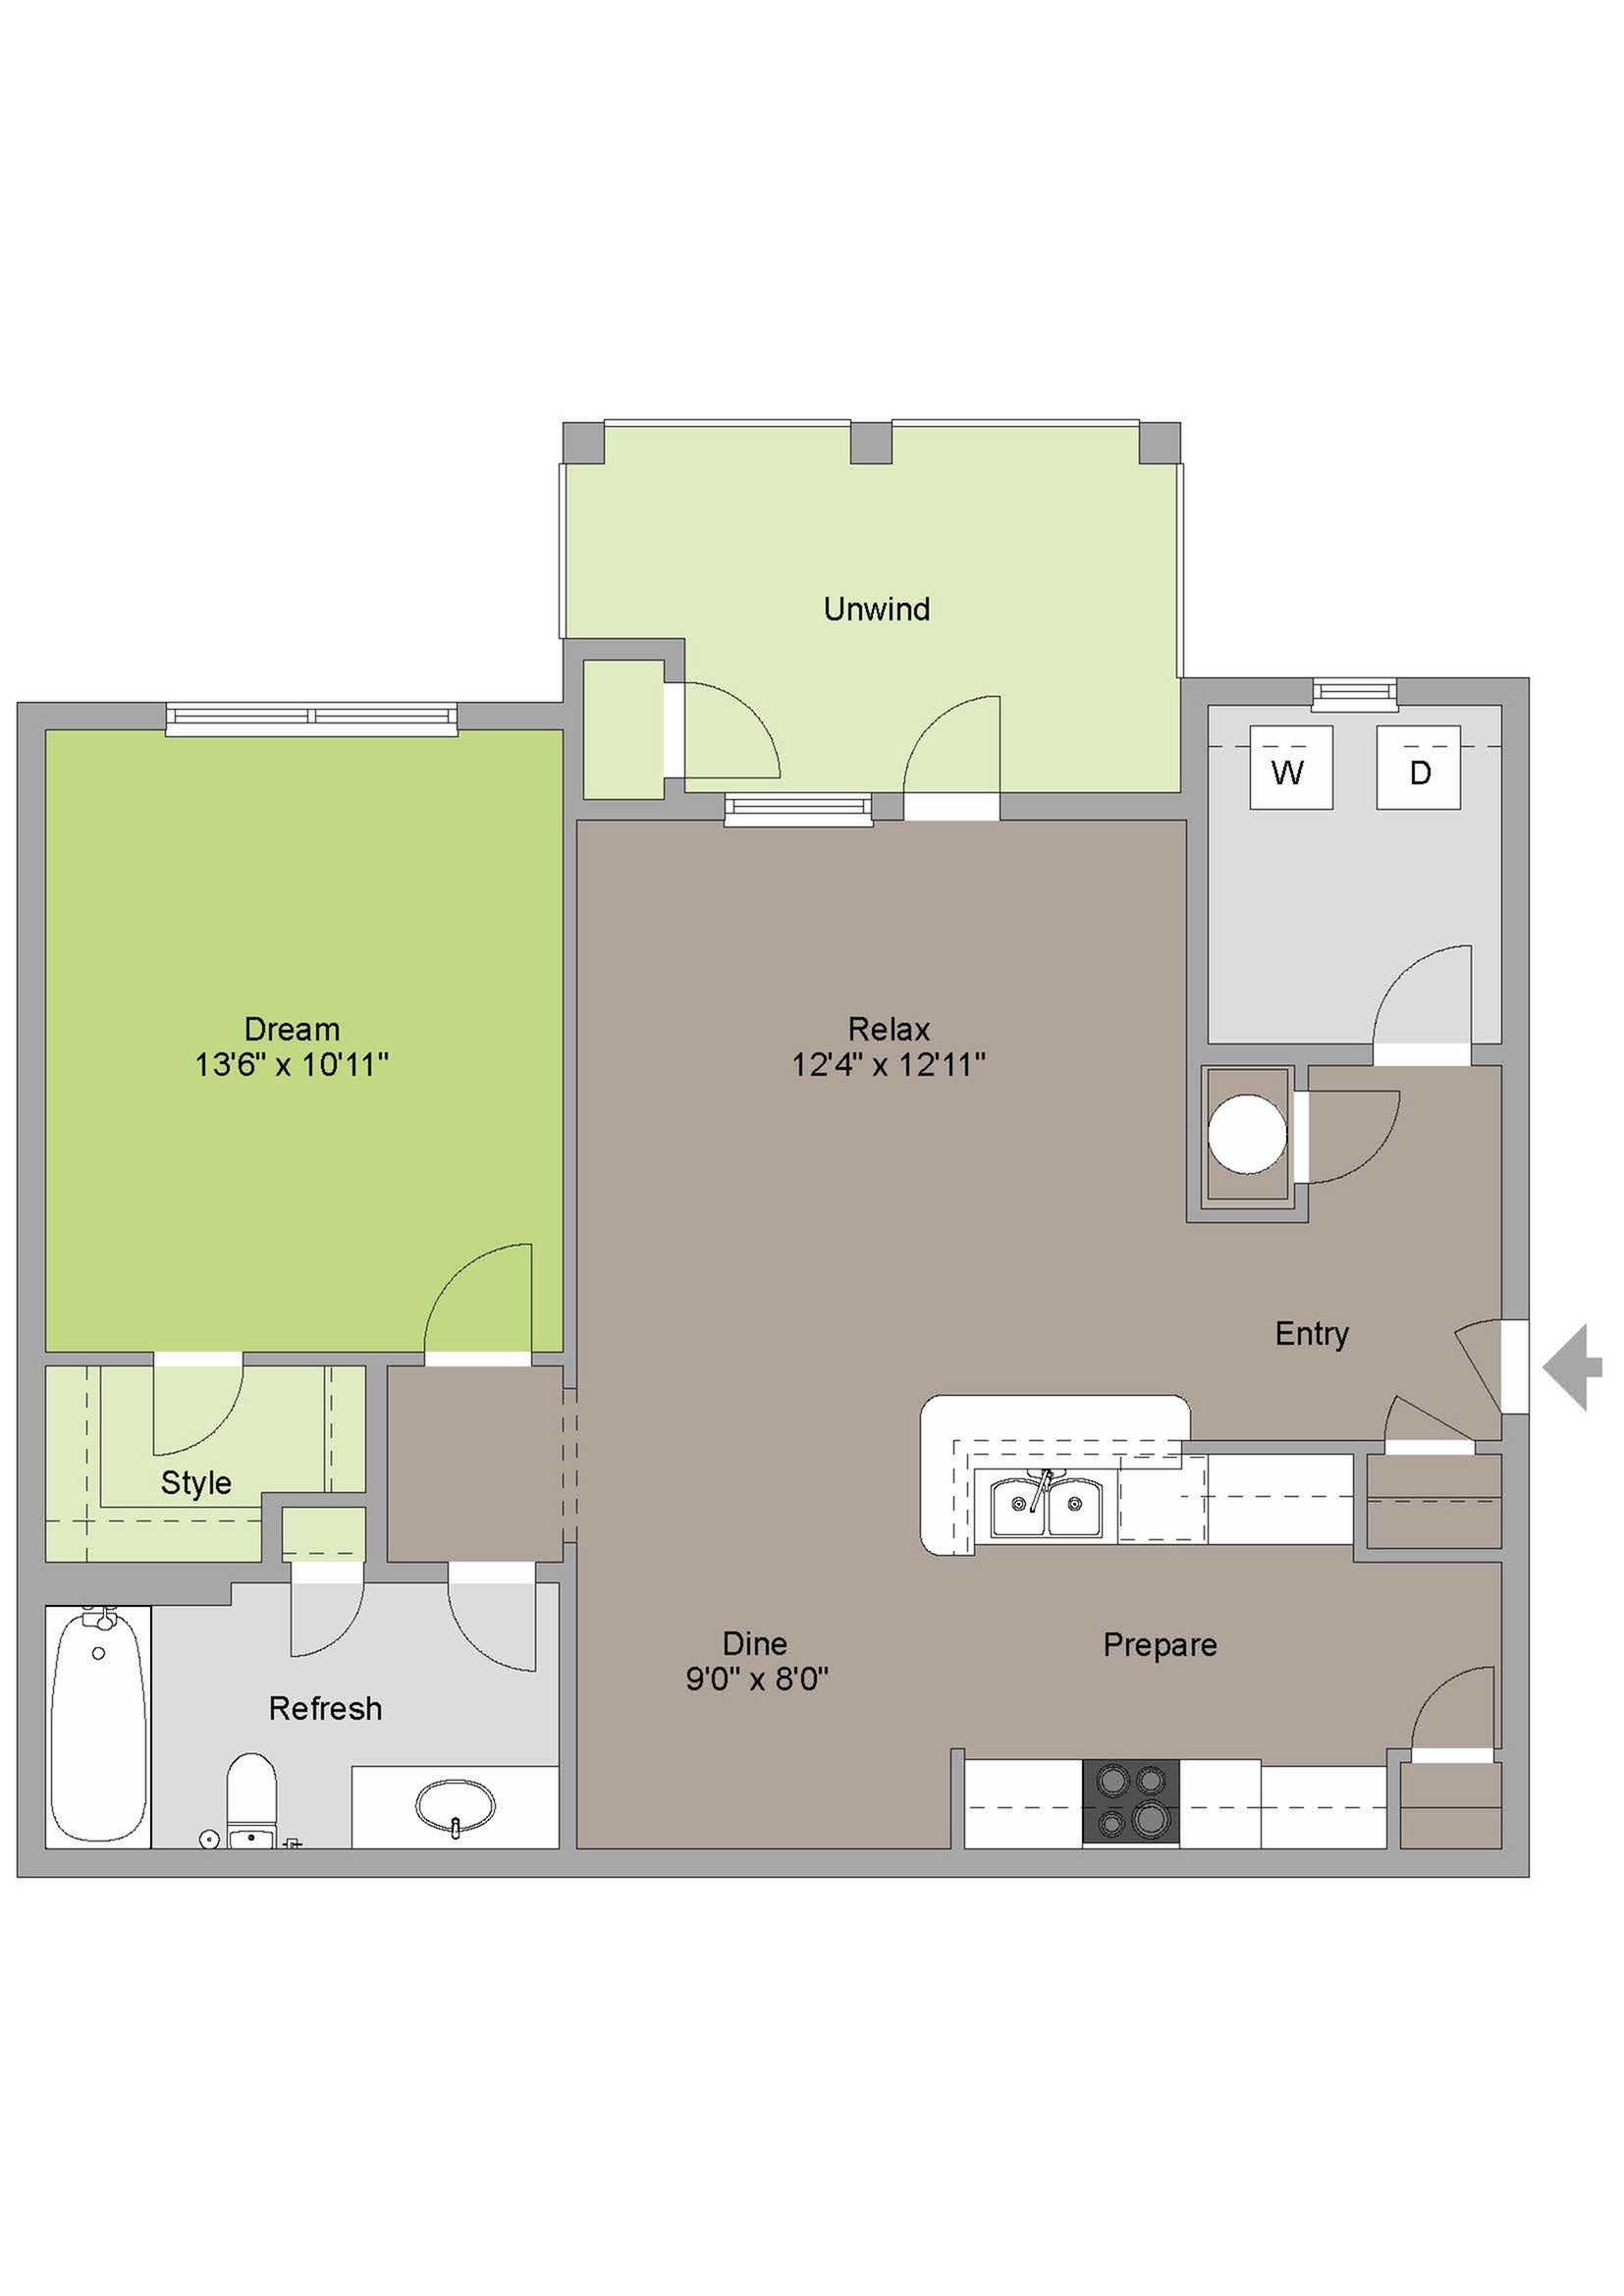 1 bed 1 bath apartment in arden nc ansley at roberts lake for The ansley floor plan